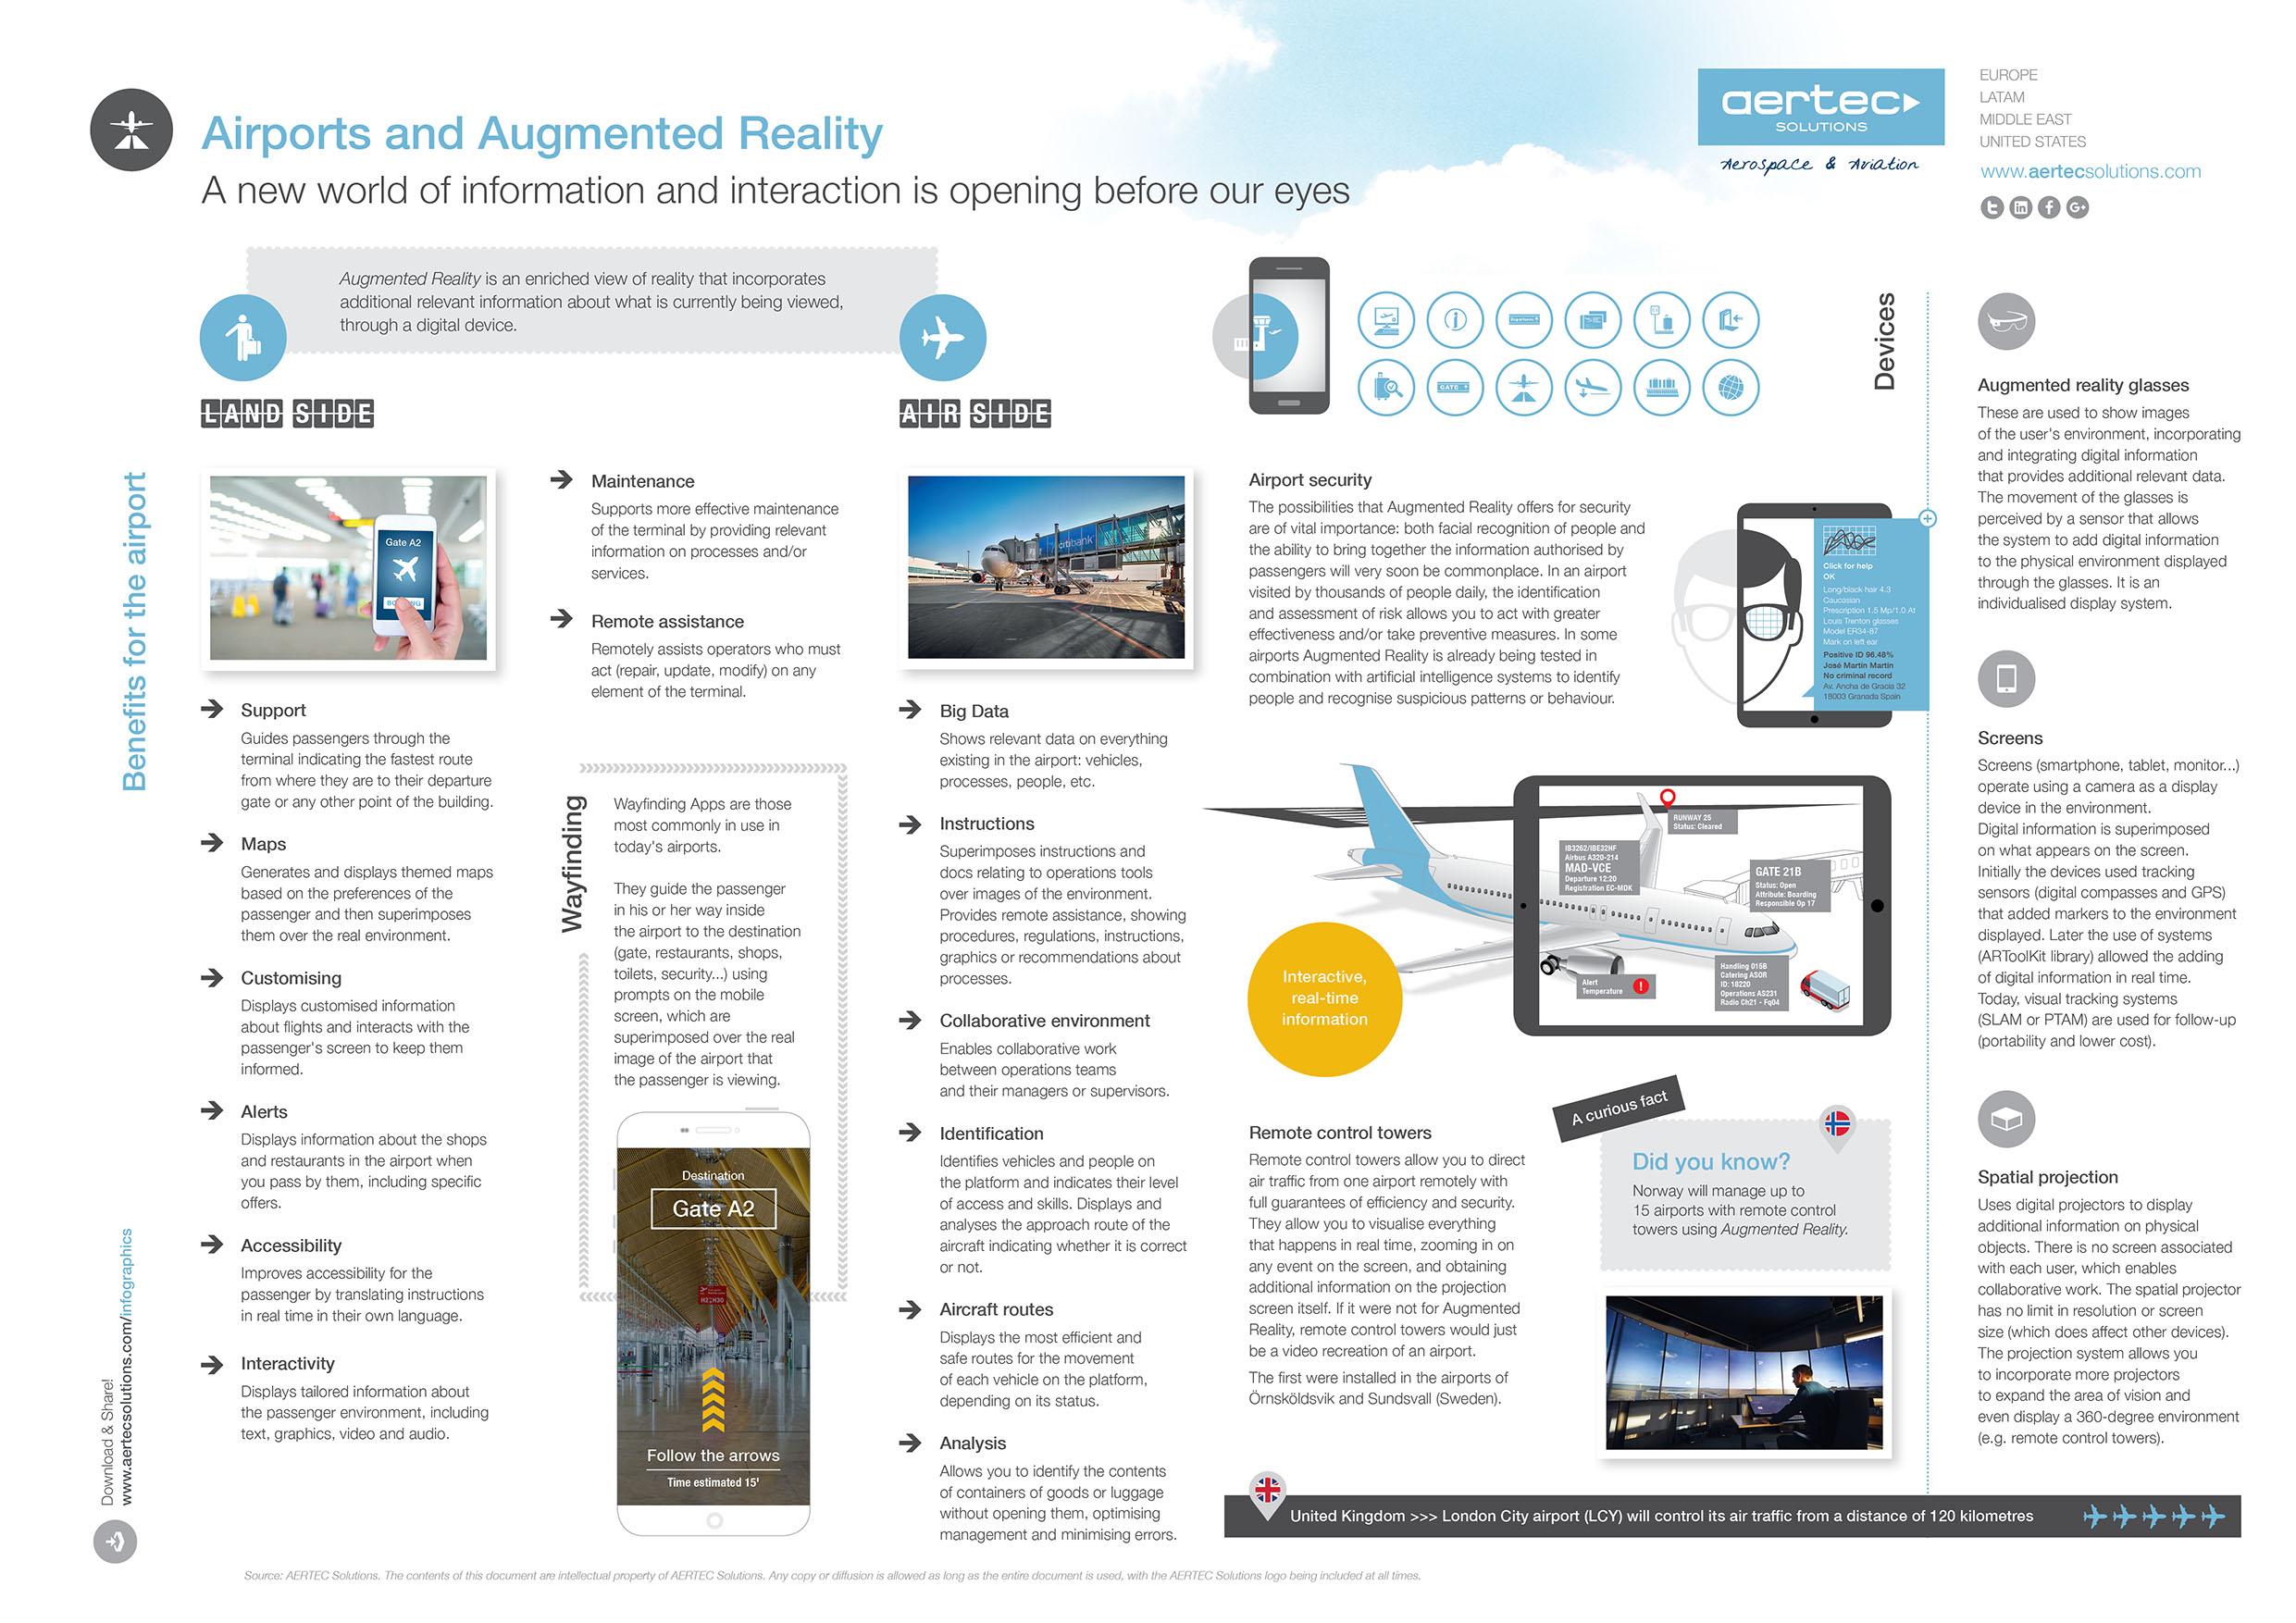 Airports and Augmented Reality